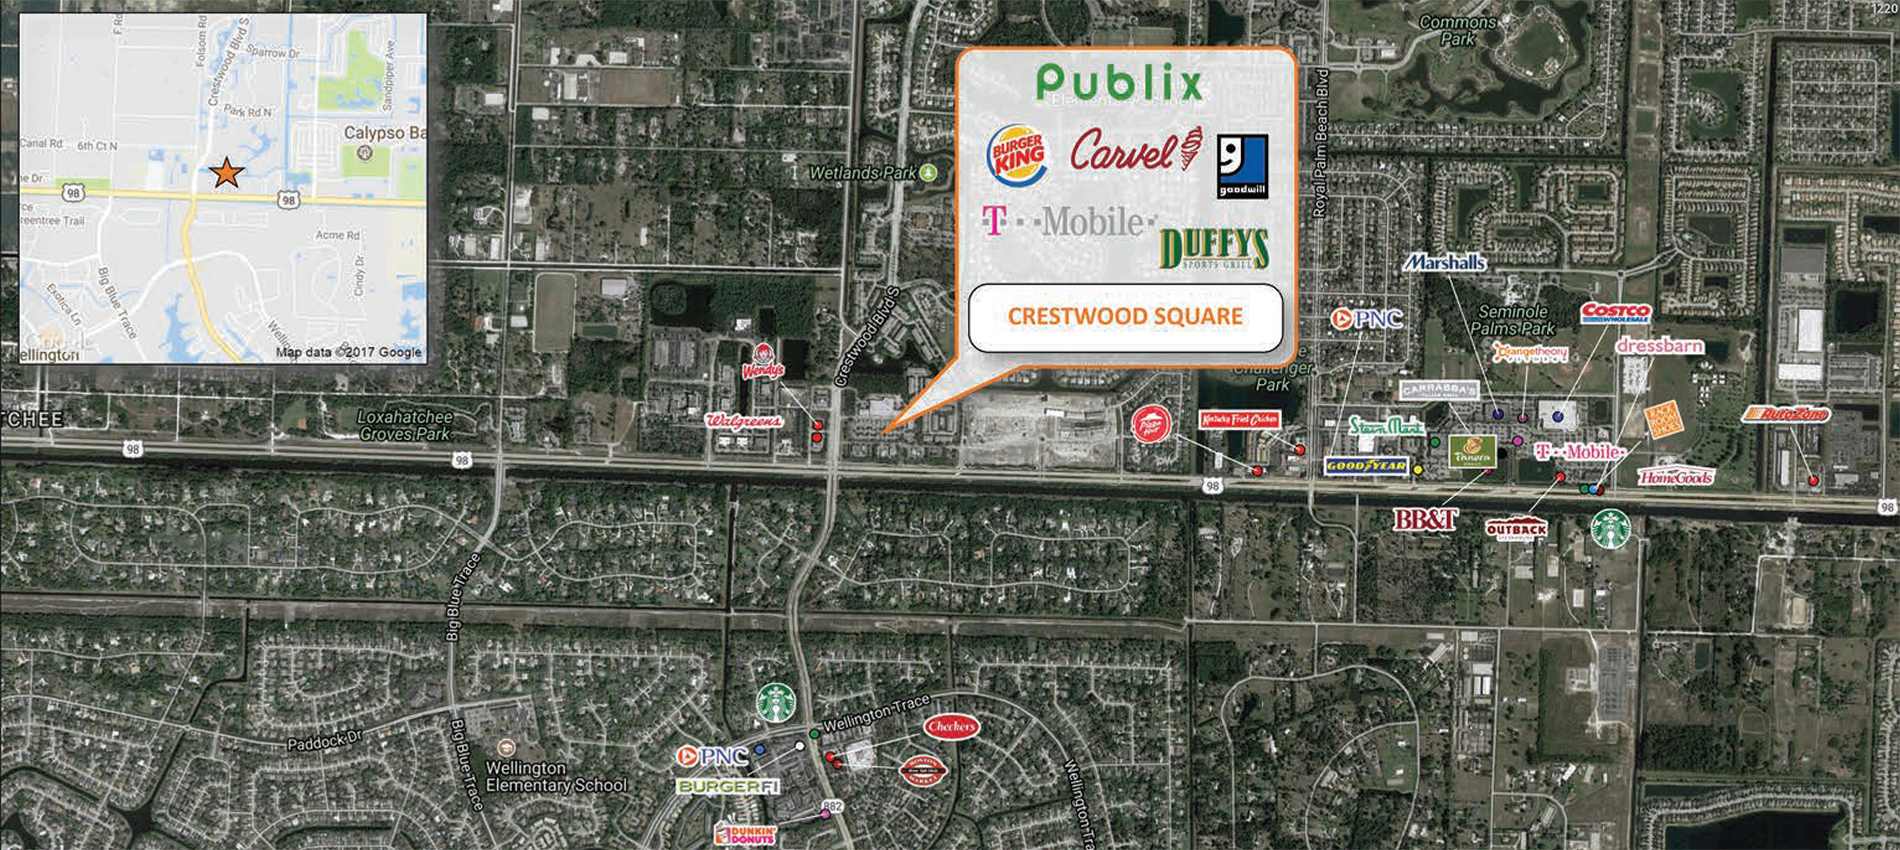 Crestwood Square trade area map